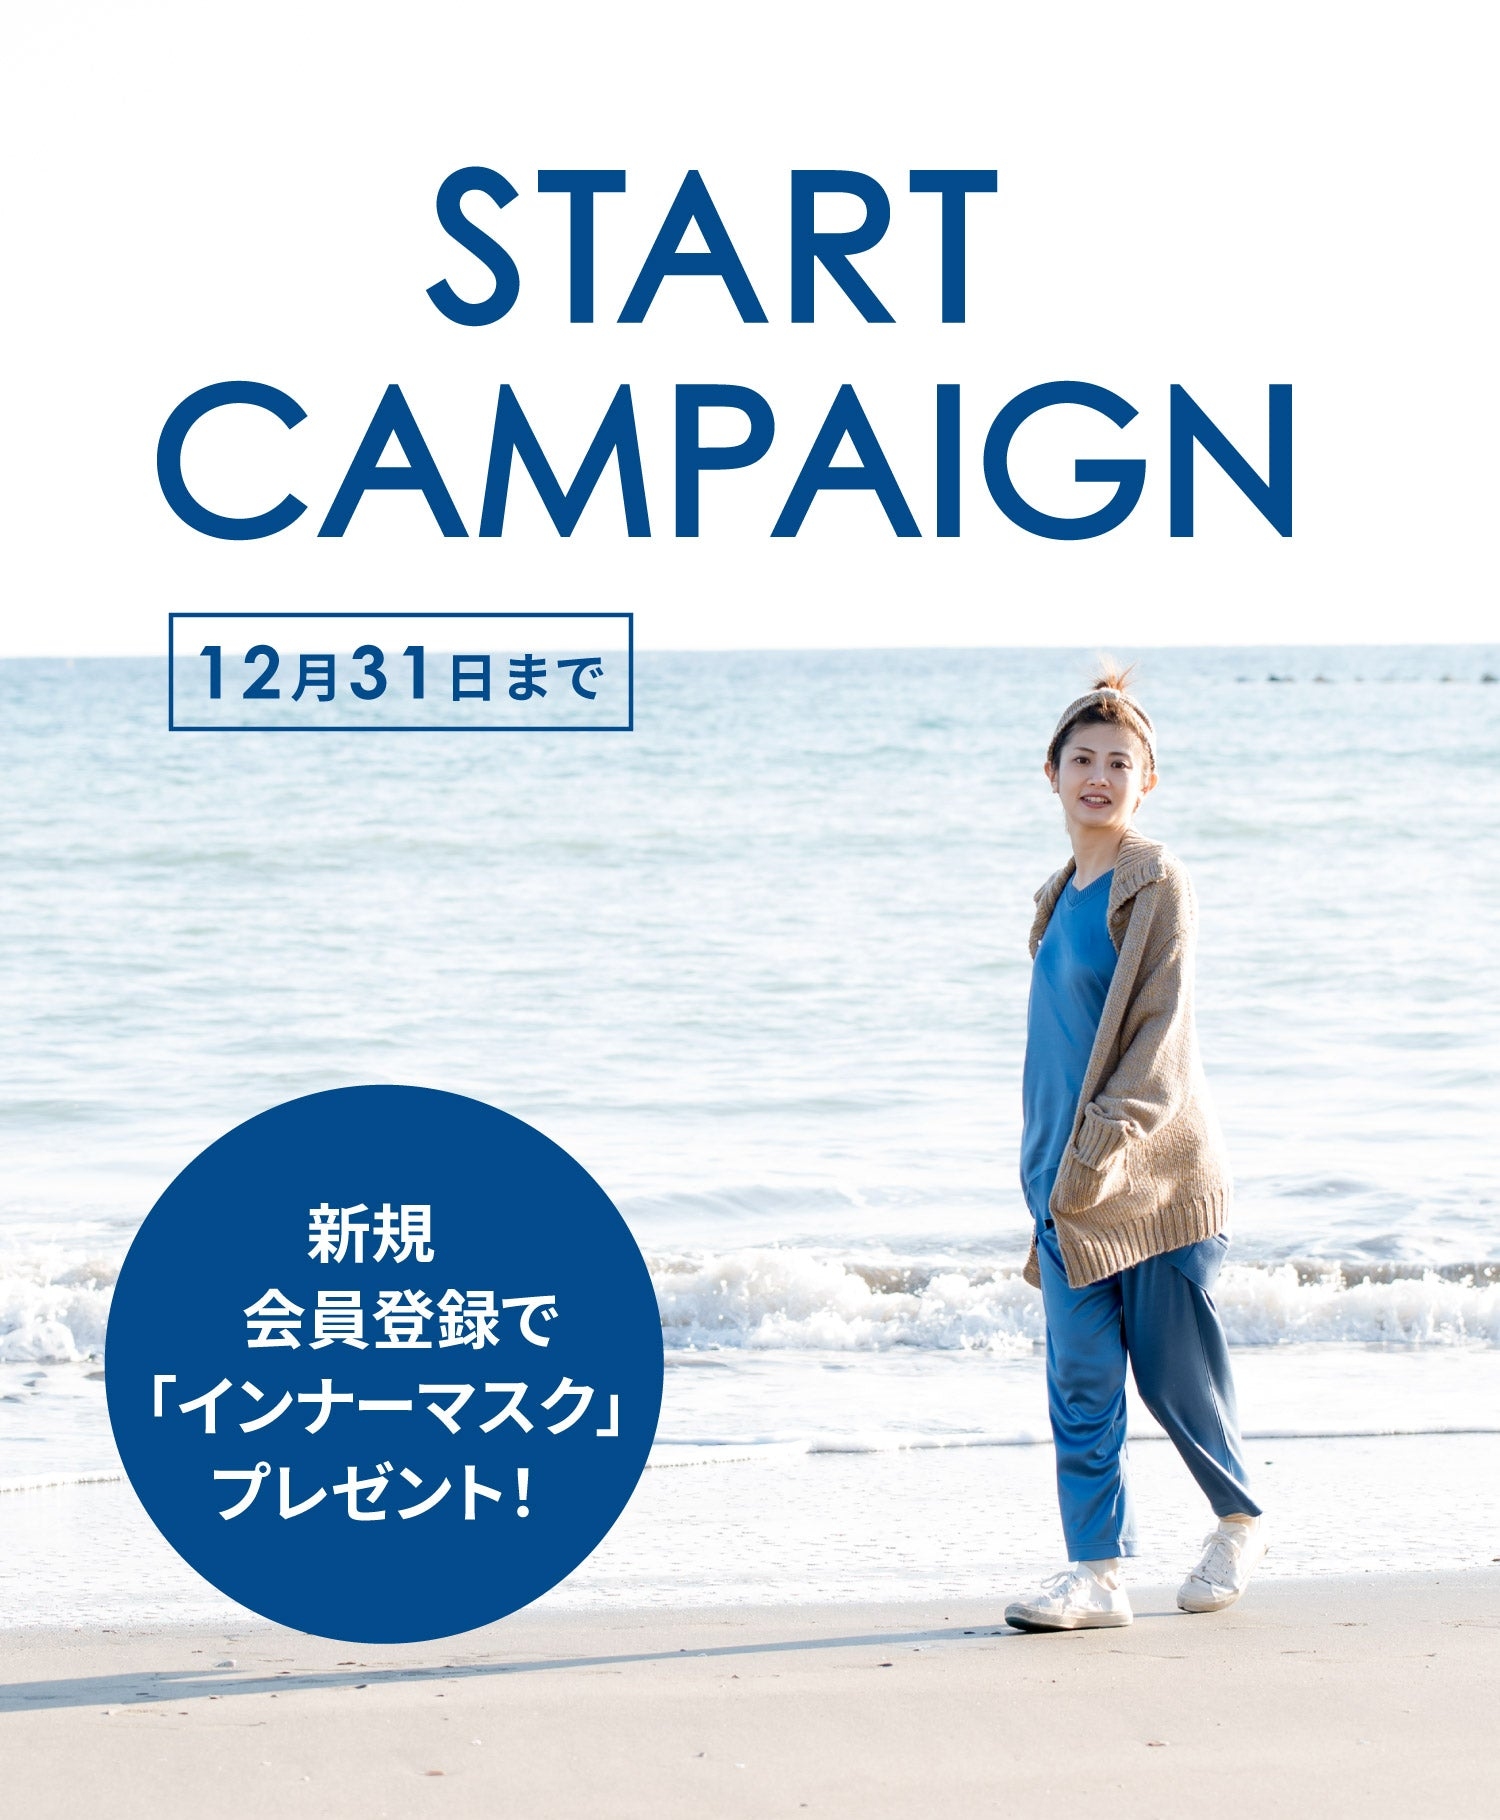 START CAMPAIGN 新規会員登録でインナーマスクプレゼント!